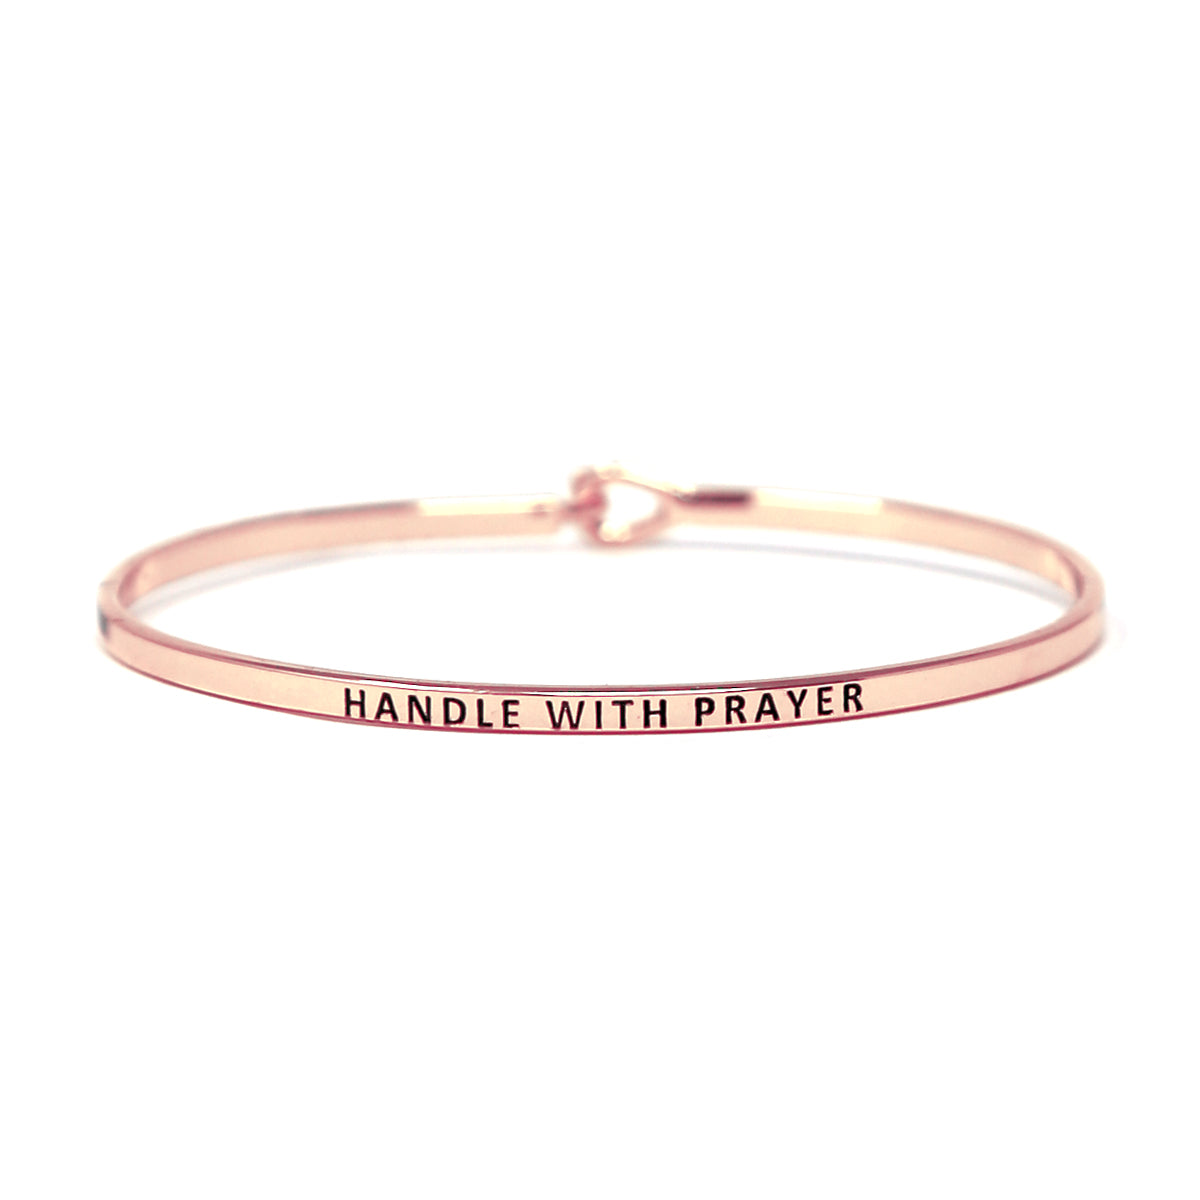 HANDLE WITH PRAYER Inspirational Message Bracelet